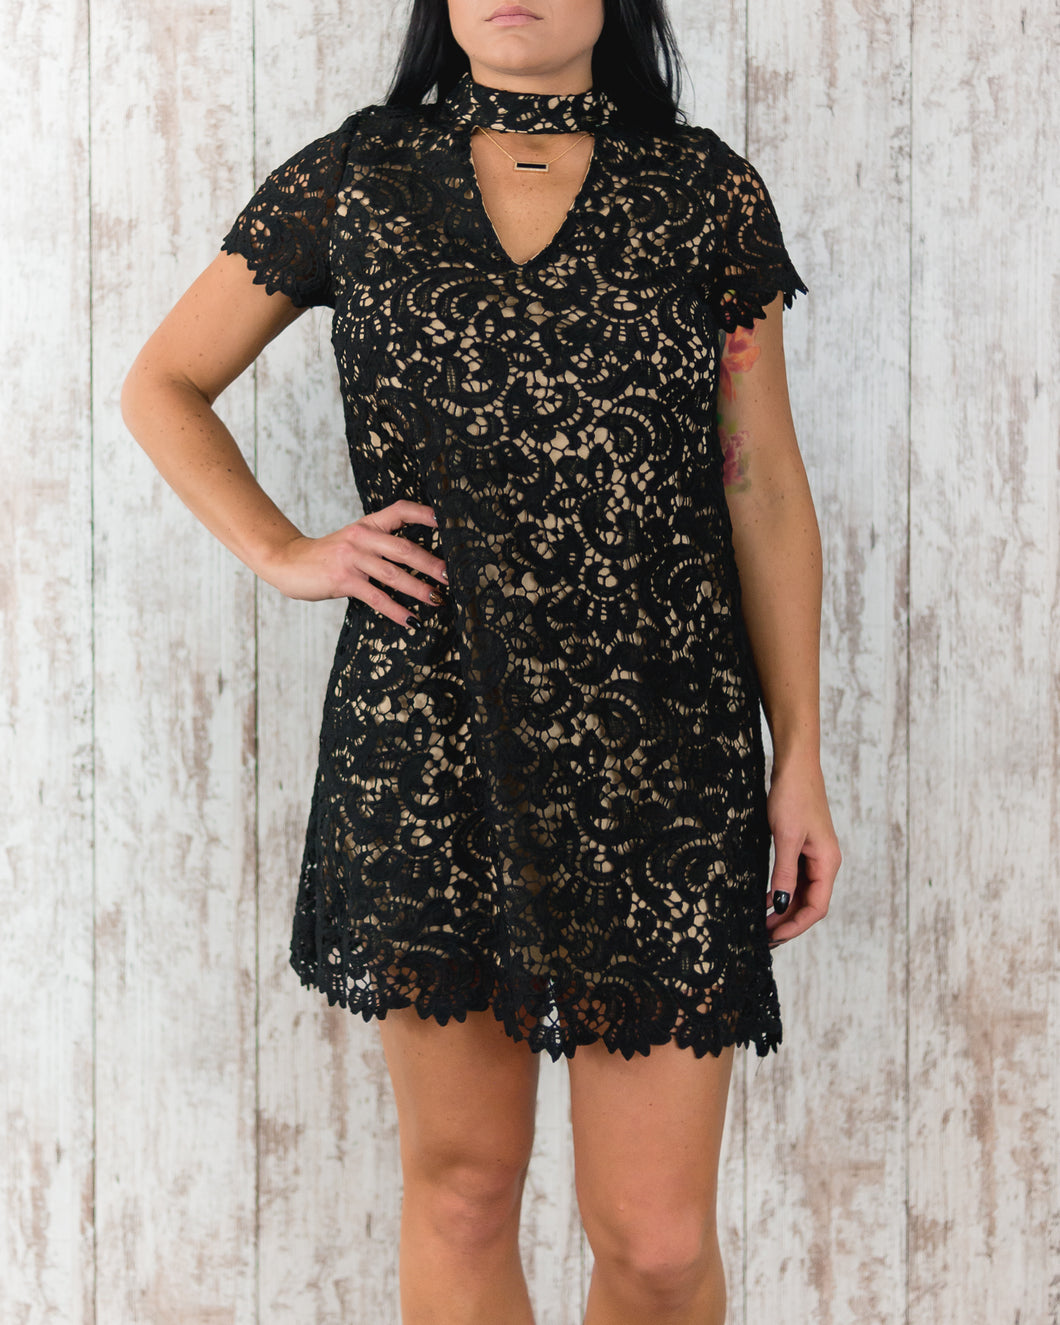 Woven Lace Overlay Dress